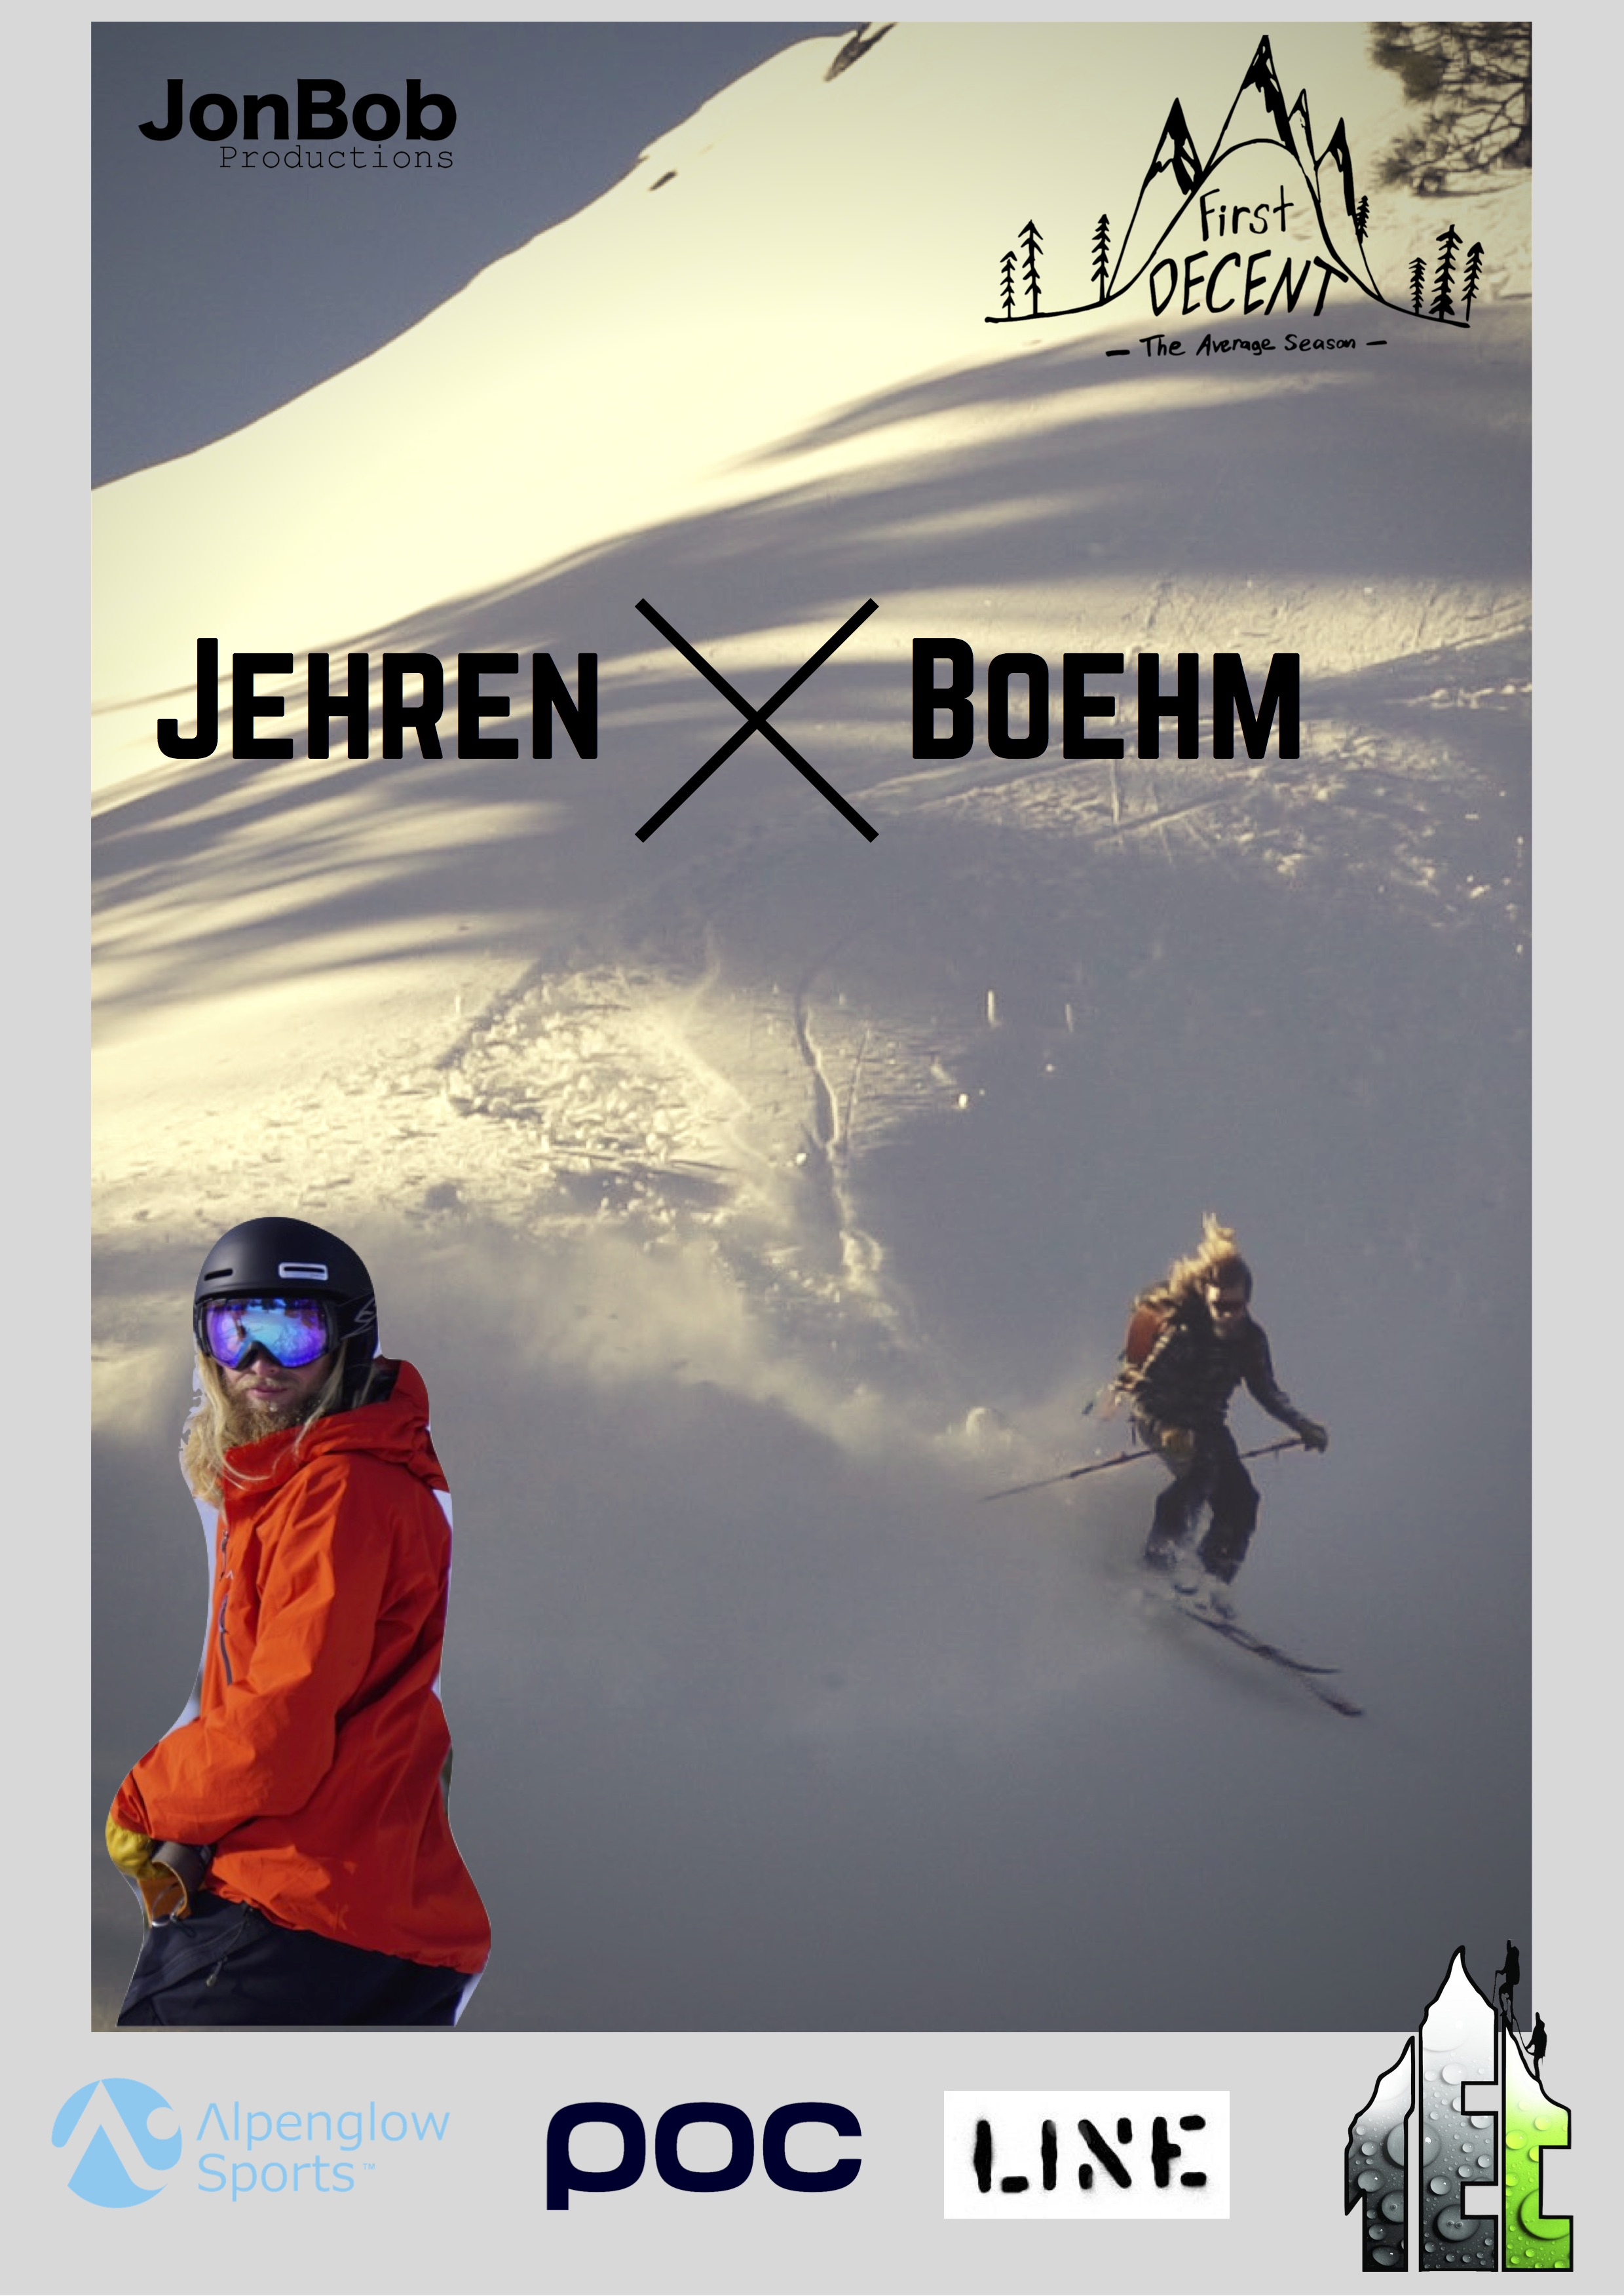 Jehren First Decent Poster.jpg